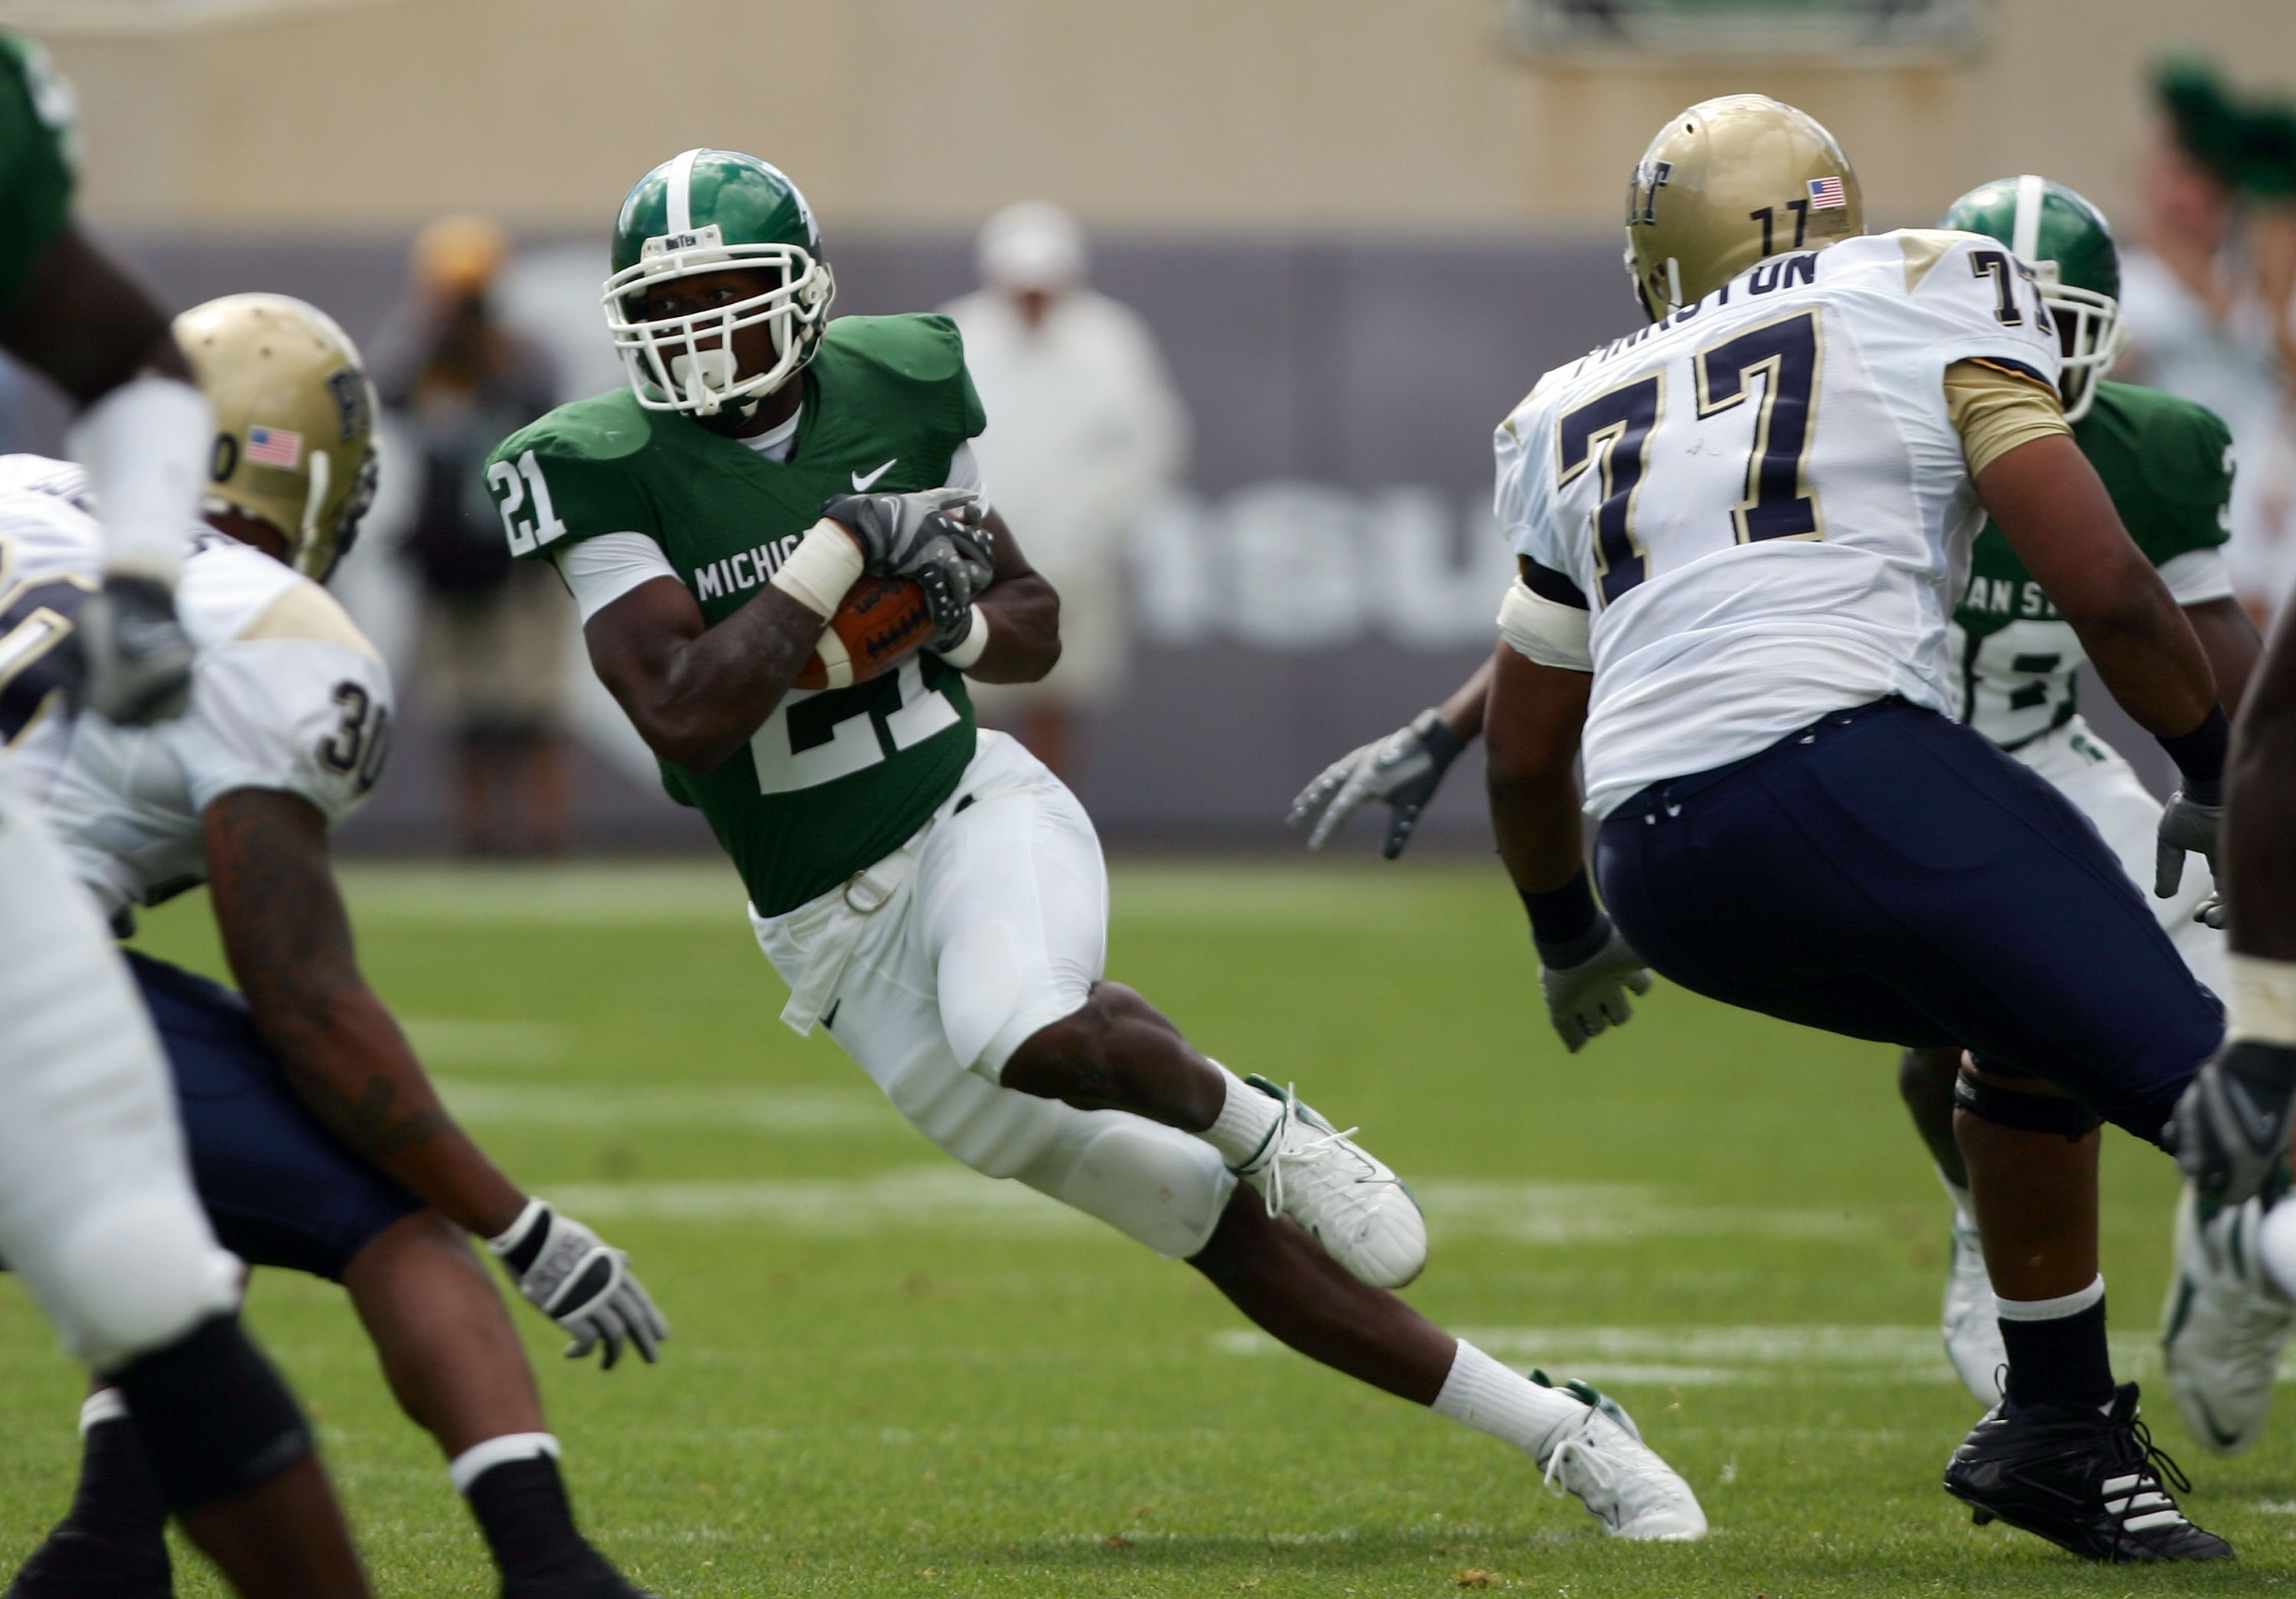 EAST LANSING, MI - SEPTEMBER 15:  Otis Wiley #21 of the Michigan State Spartans runs back his interception past Jason Pinkston #77 of the Pittsburgh Panthers during the first quarter at Spartan Stadium on September 15, 2007 in East Lansing, Michigan. The